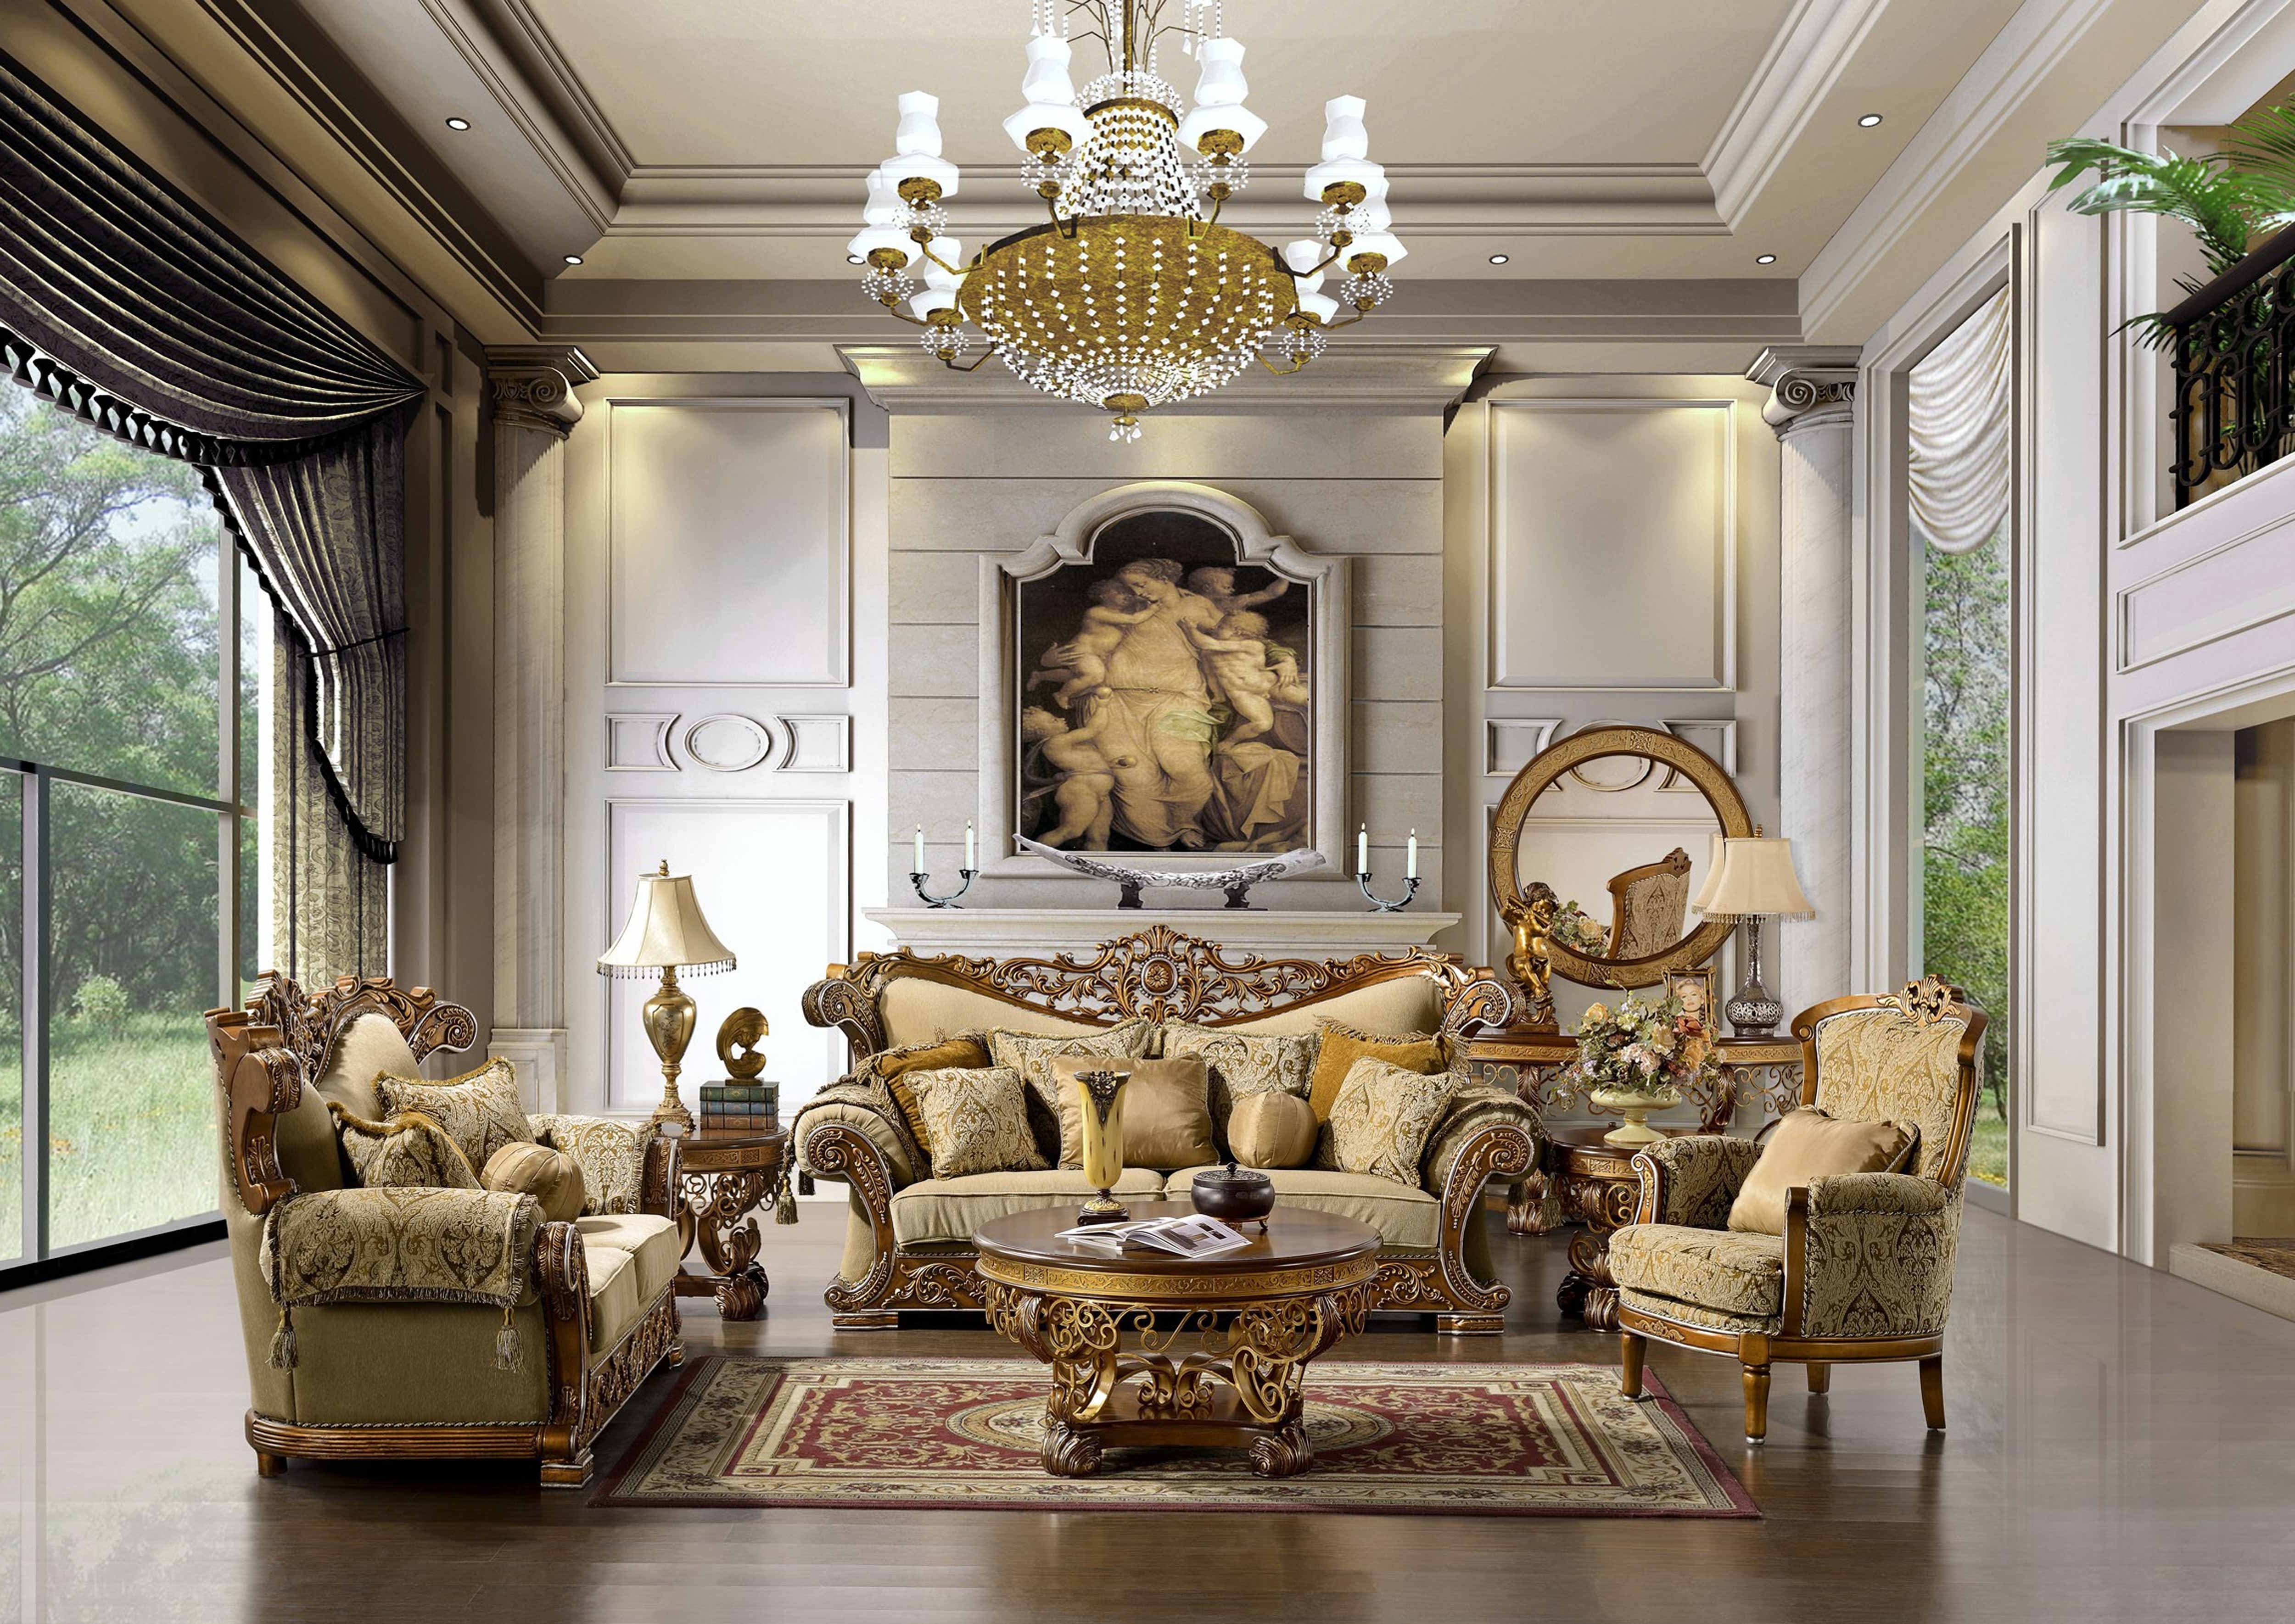 2018 Elegant Sofas And Chairs Pertaining To The Space Is Big And Has A Luxurious And Elegant Shapes And Large (View 2 of 15)